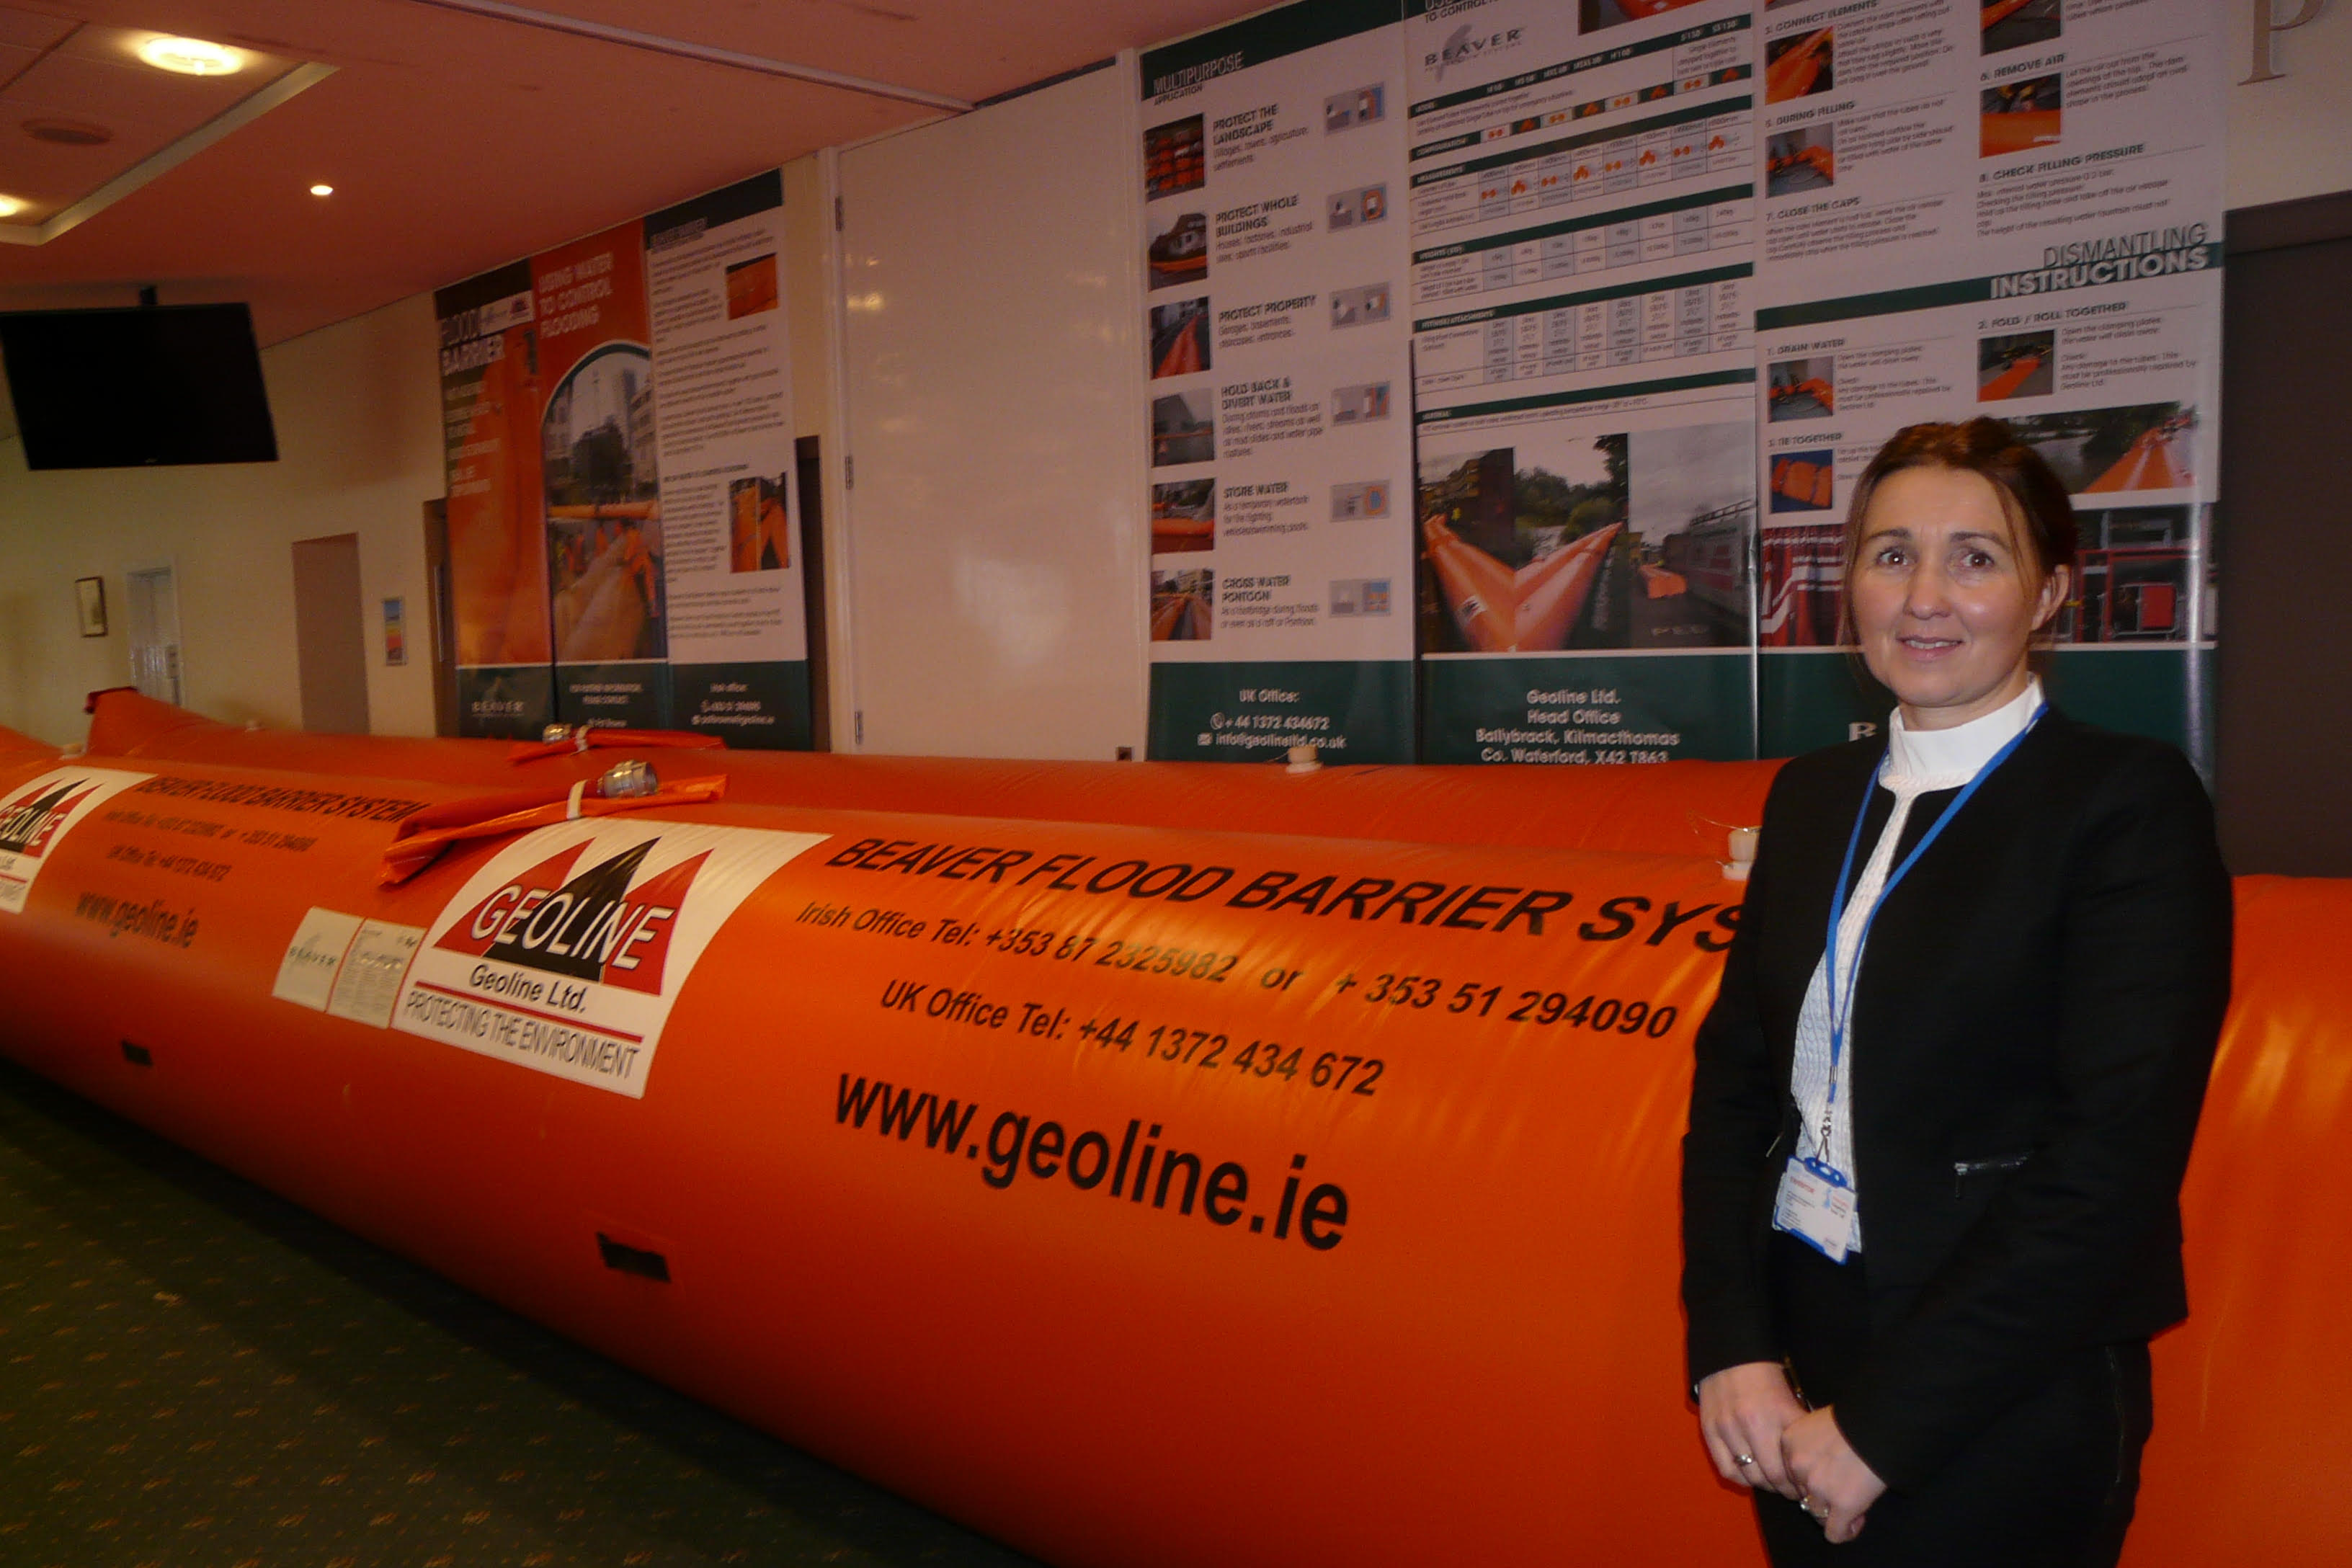 Geoline Have Success With Flood Barriers At UK EXPO